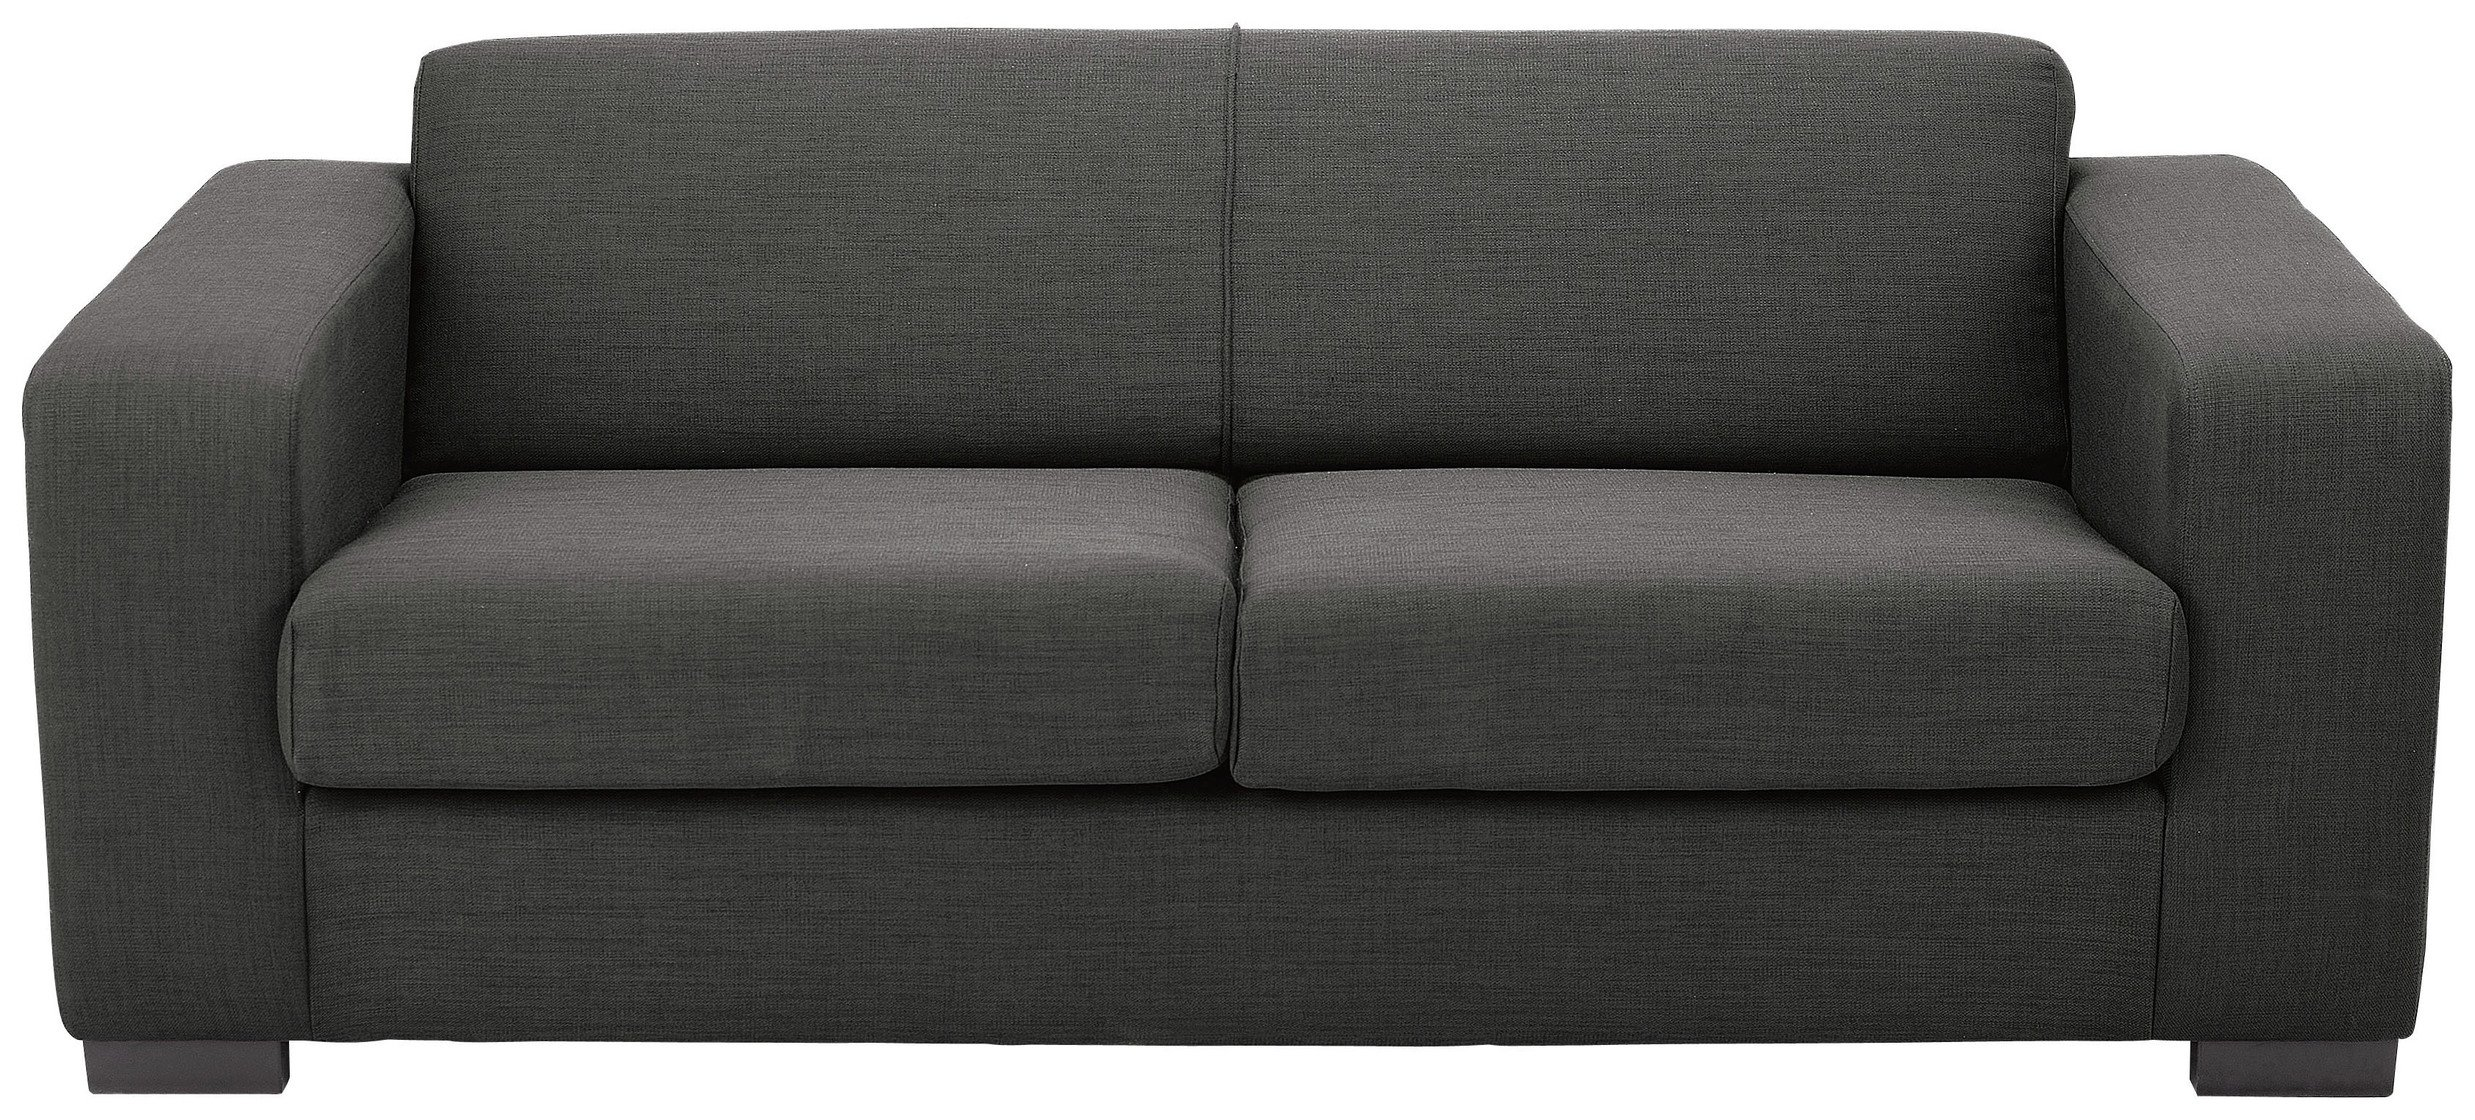 Argos Home - Ava - 2 Seater Fabric - Sofa Bed - Charcoal at Argos